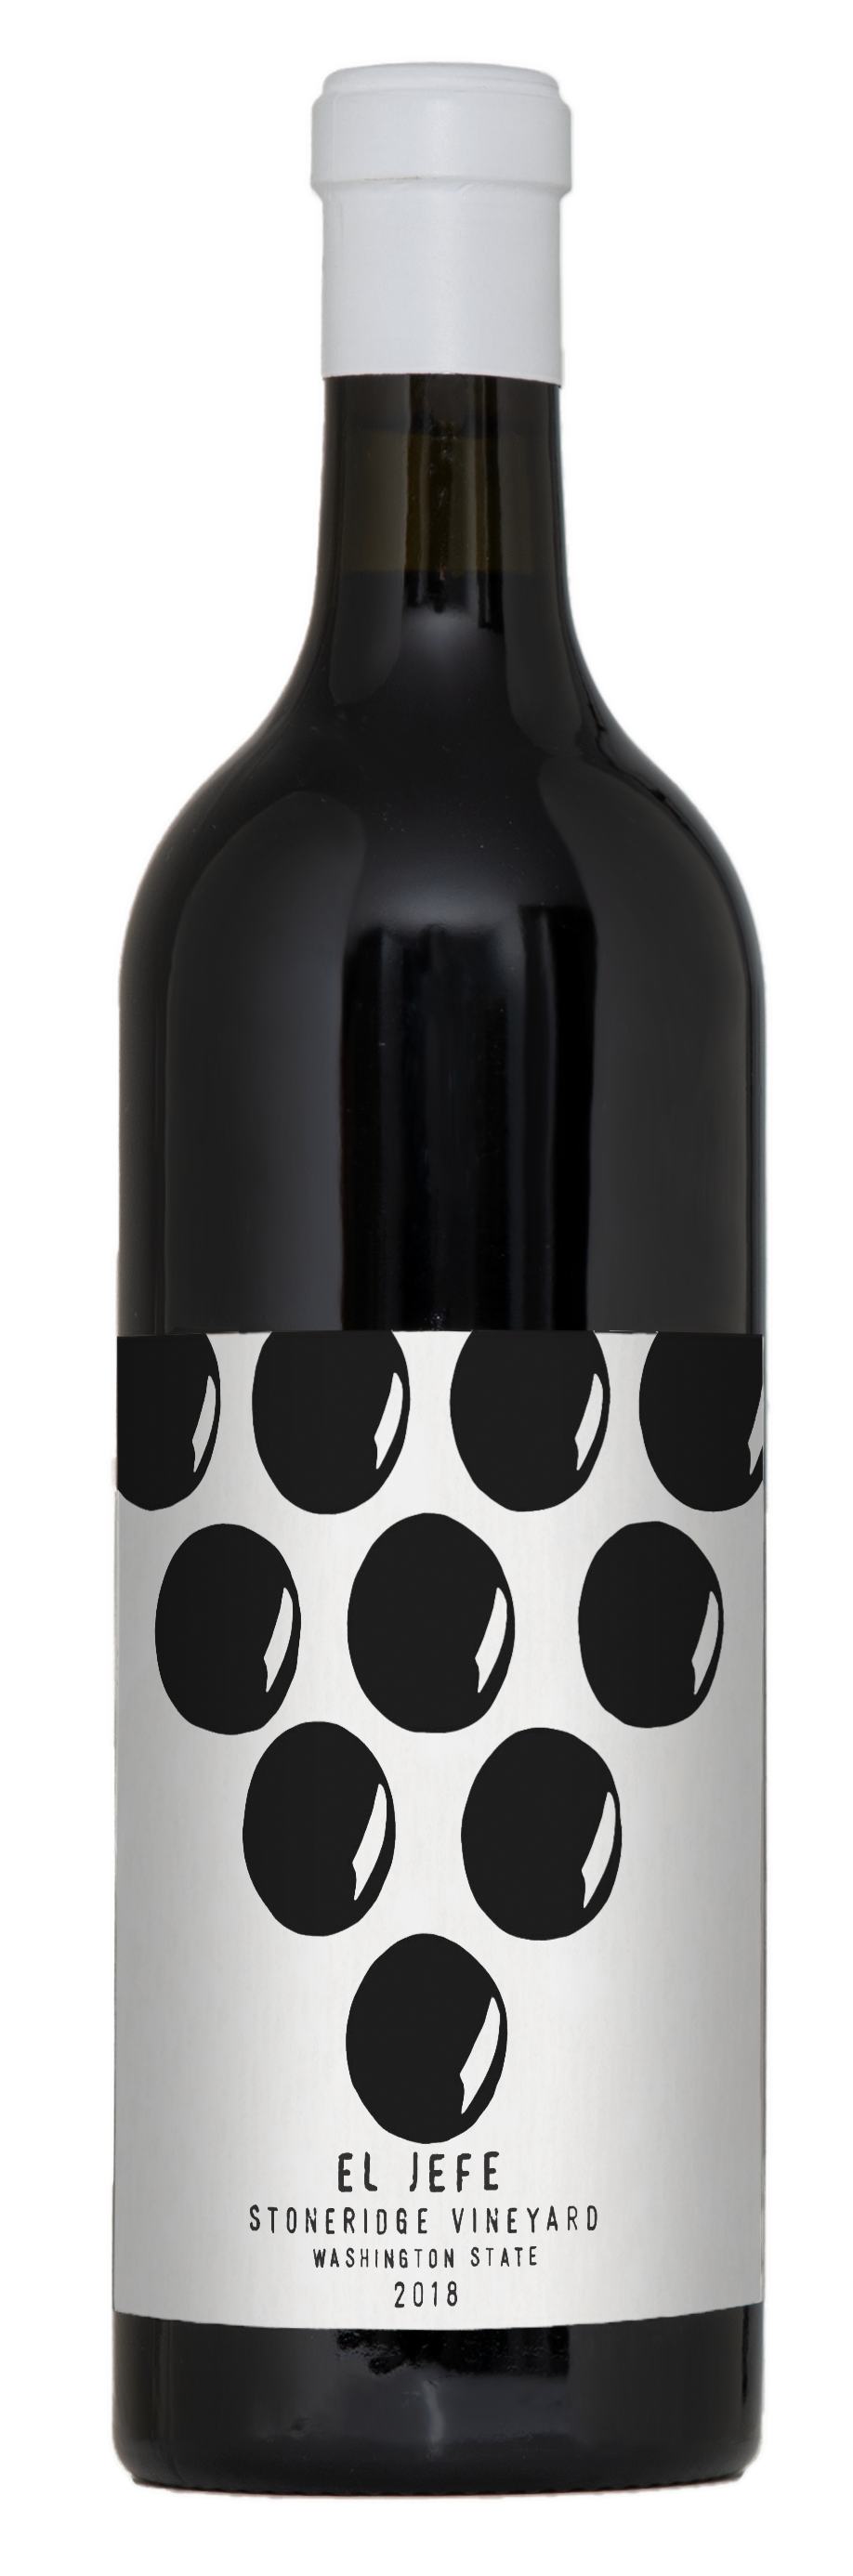 A A beautiful black bottle of wine with white capsule and white label with black text.